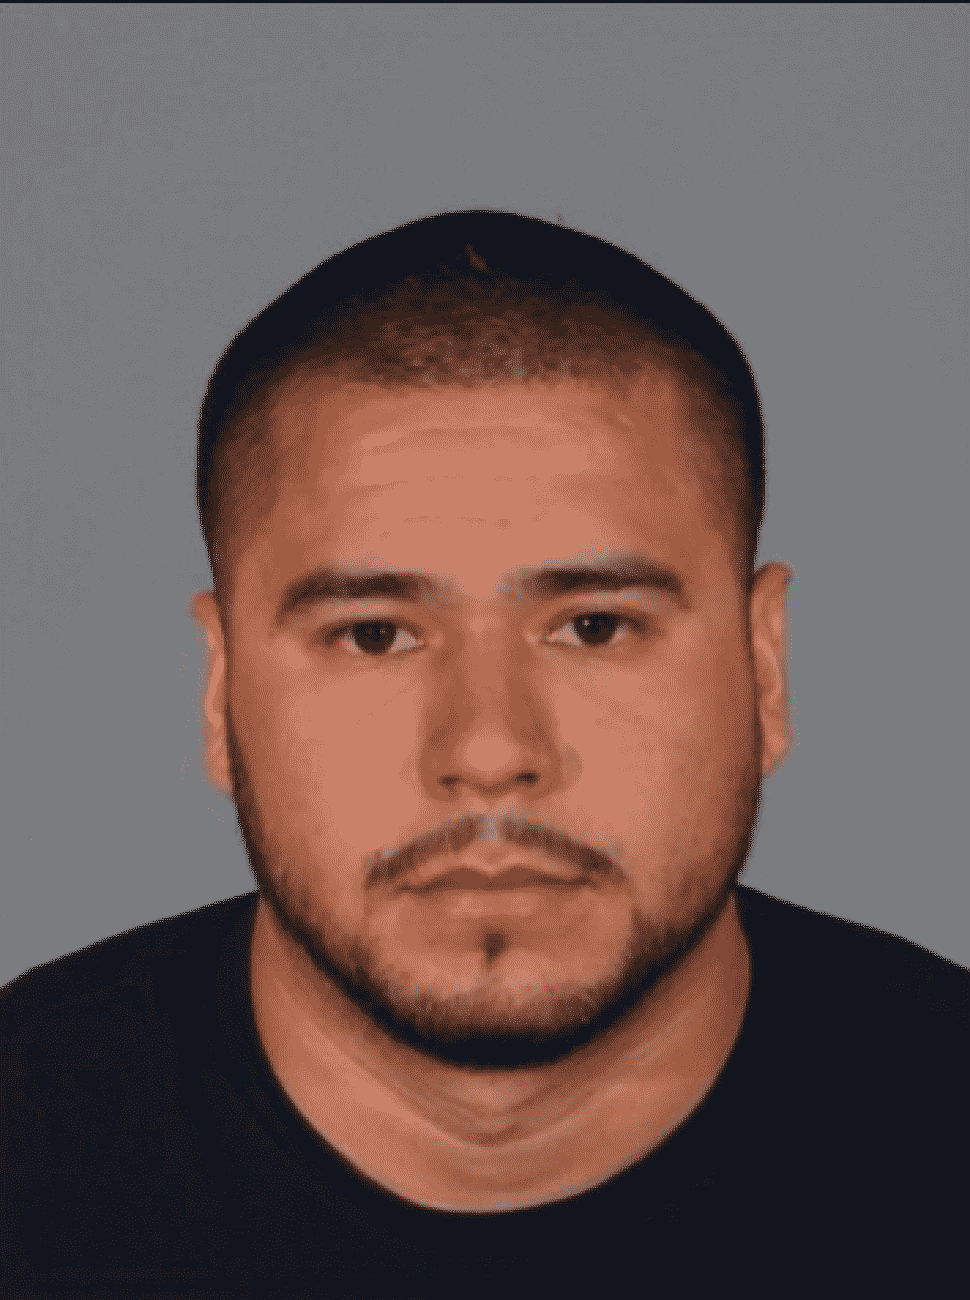 Marco Anthony Garay, who investigators named as a suspect. Photo courtesy LASD.